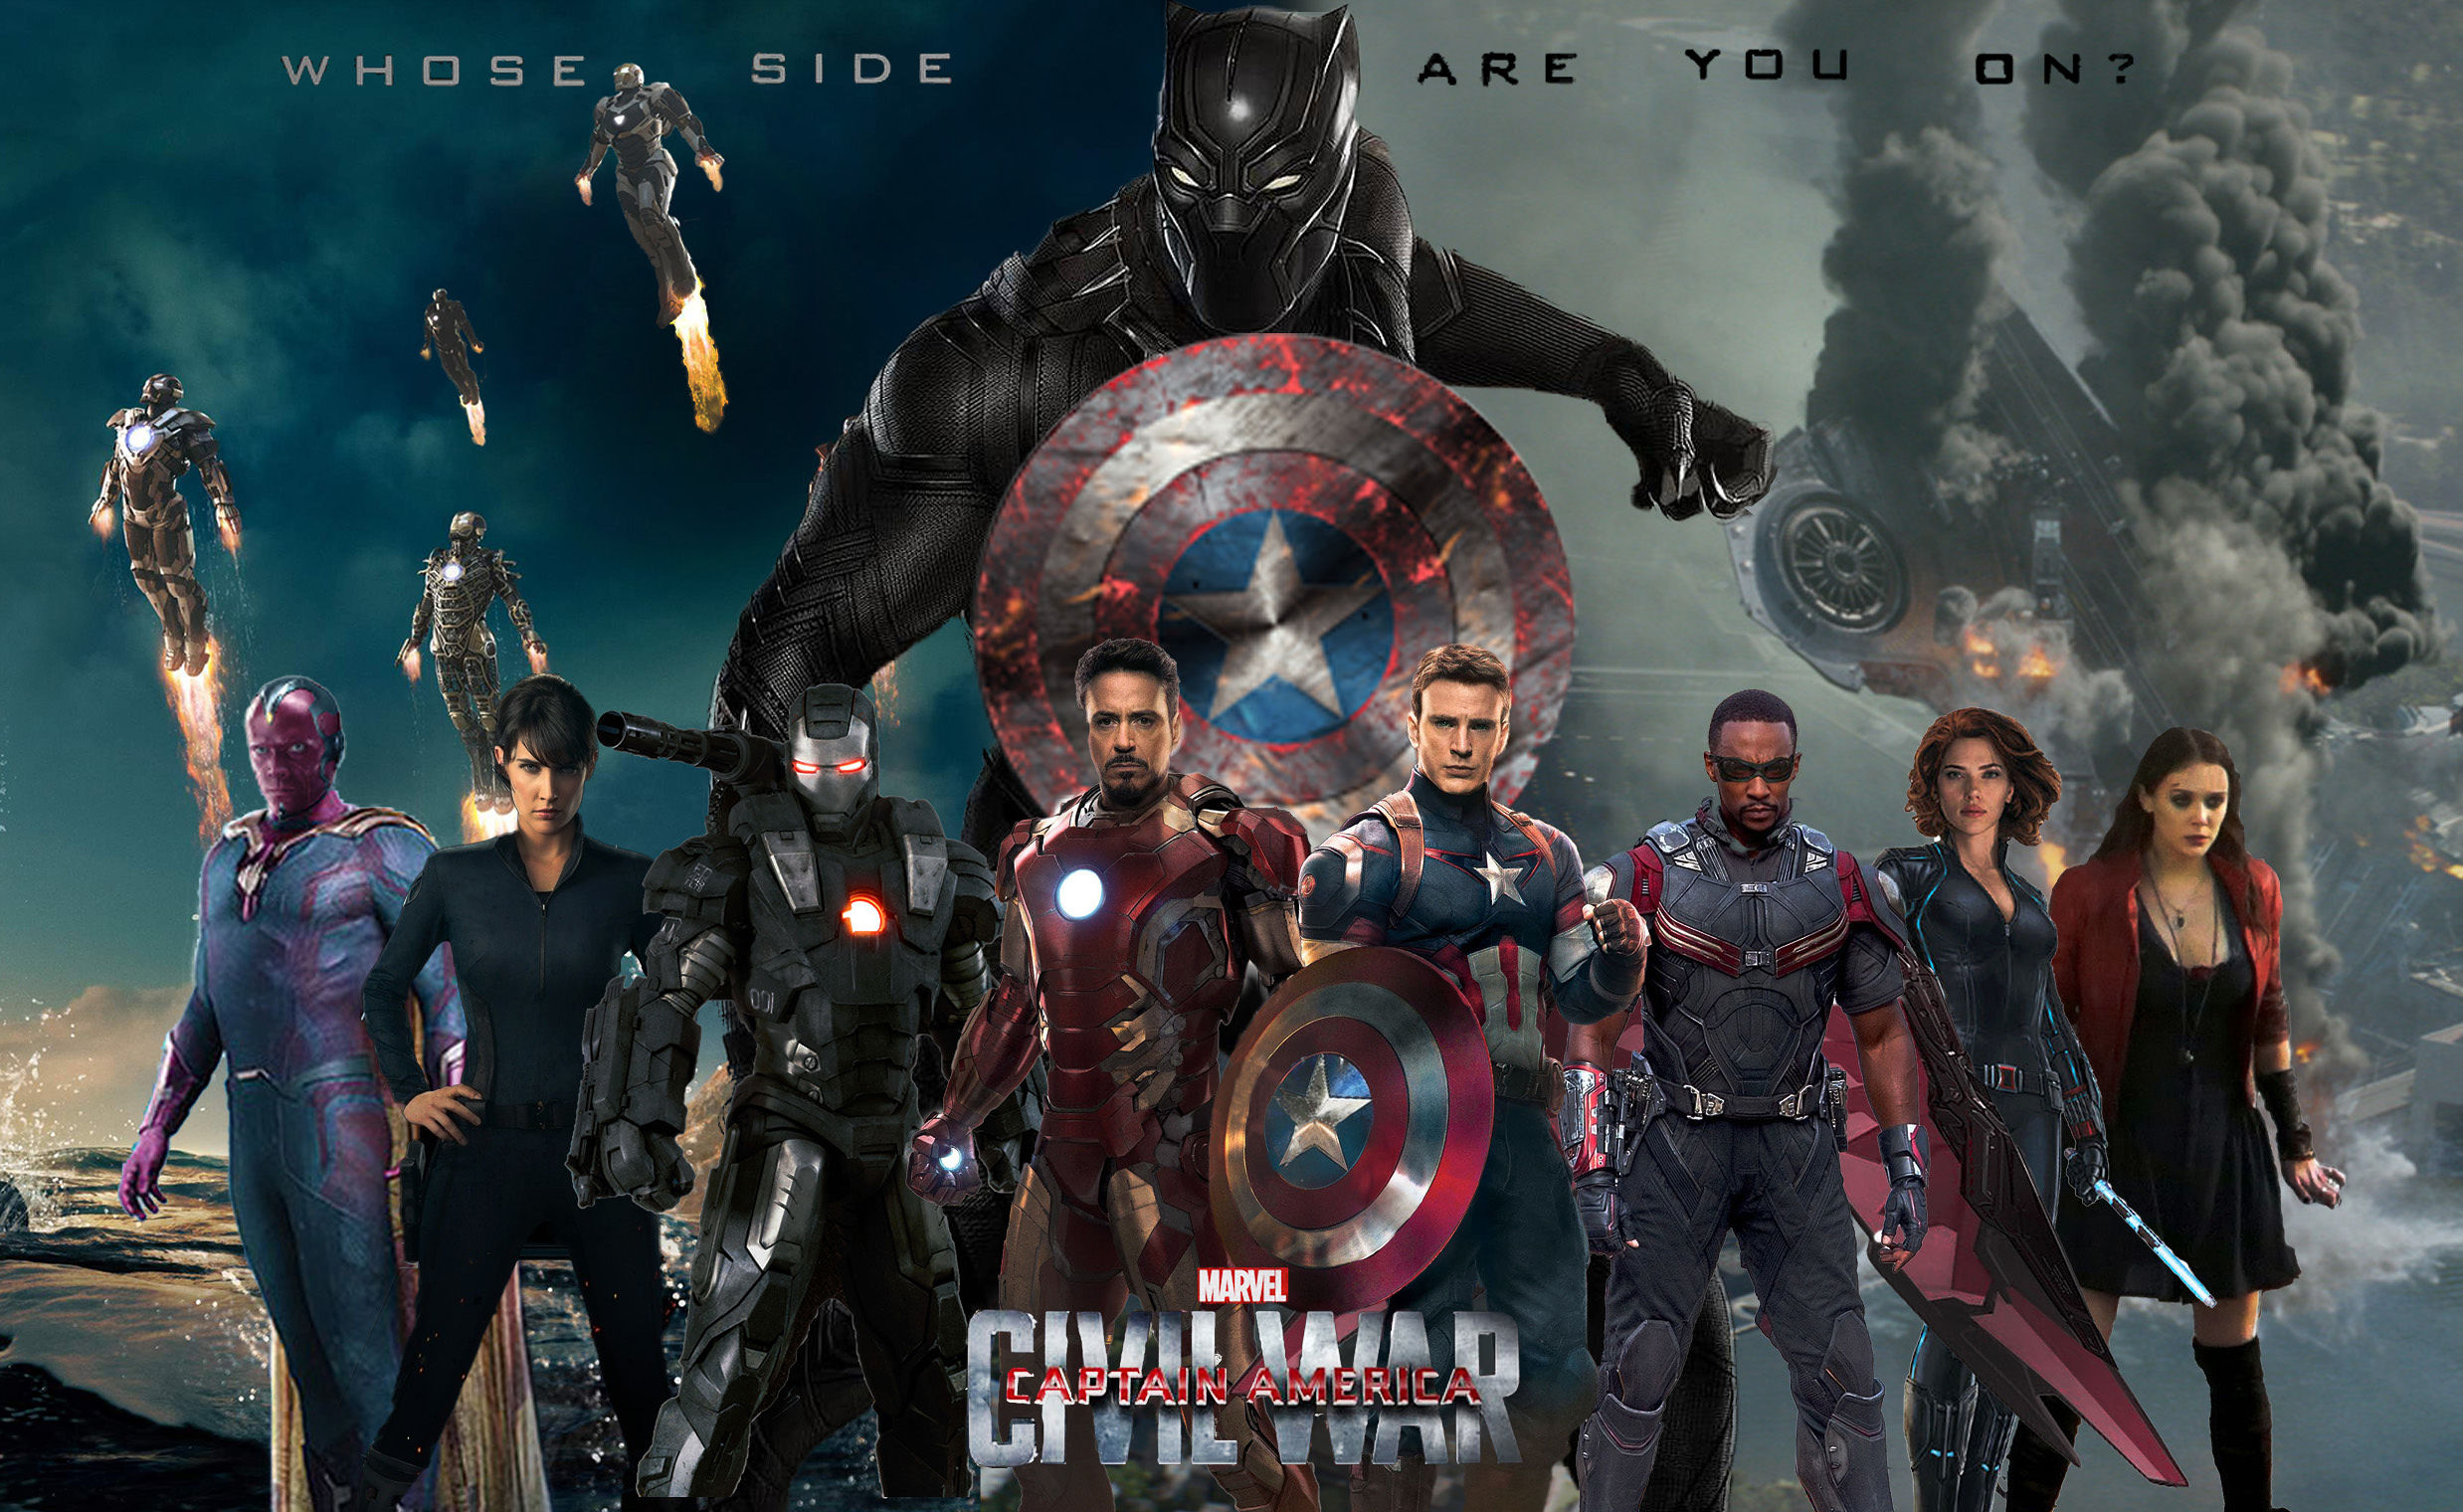 The trailer for the next installment in the Captain America series as well as the Marvel Cinematic Universe is here in a two and a half minute clip that shows the Avengers split down the middle.